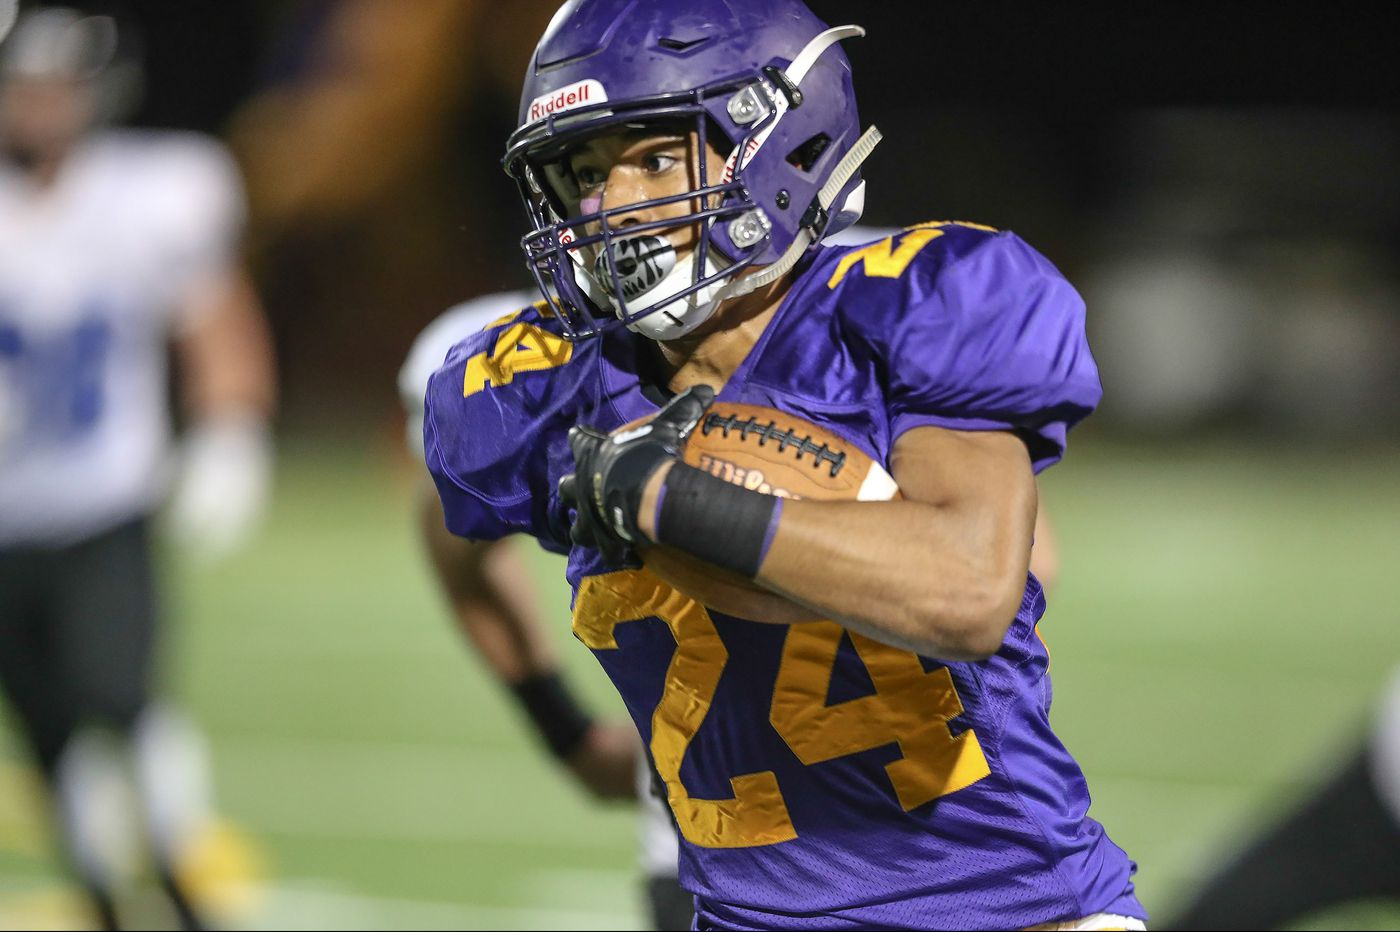 Upper Moreland's Caleb Mead is top rusher | Southeastern Pa. Football Leaders